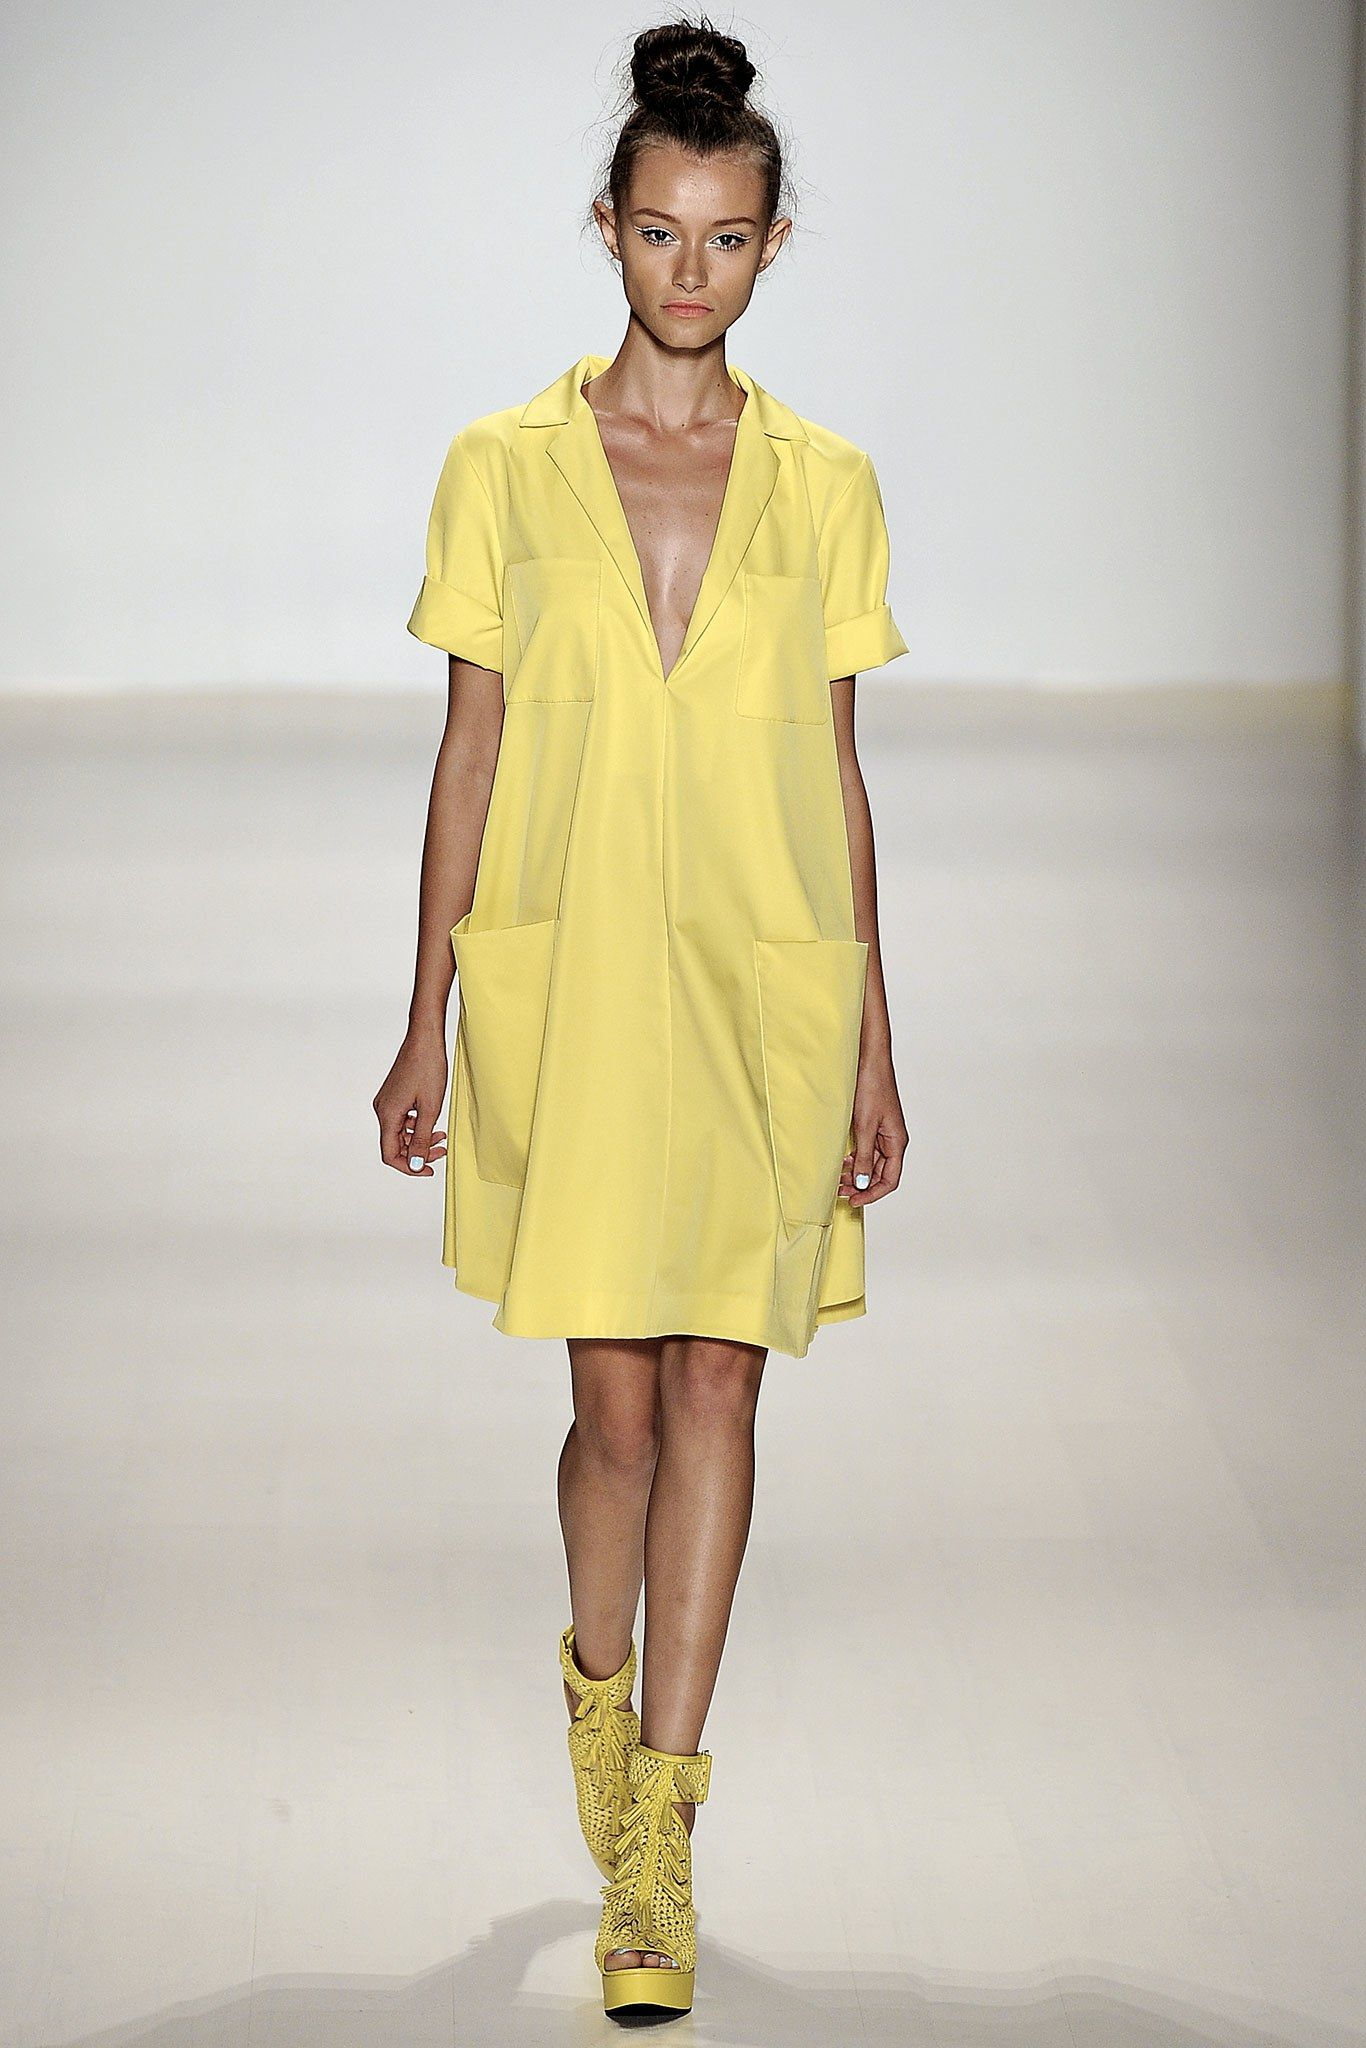 Nanette Lepore Spring 2015 Ready-to-Wear Fashion Show #asymmetrischerschnitt